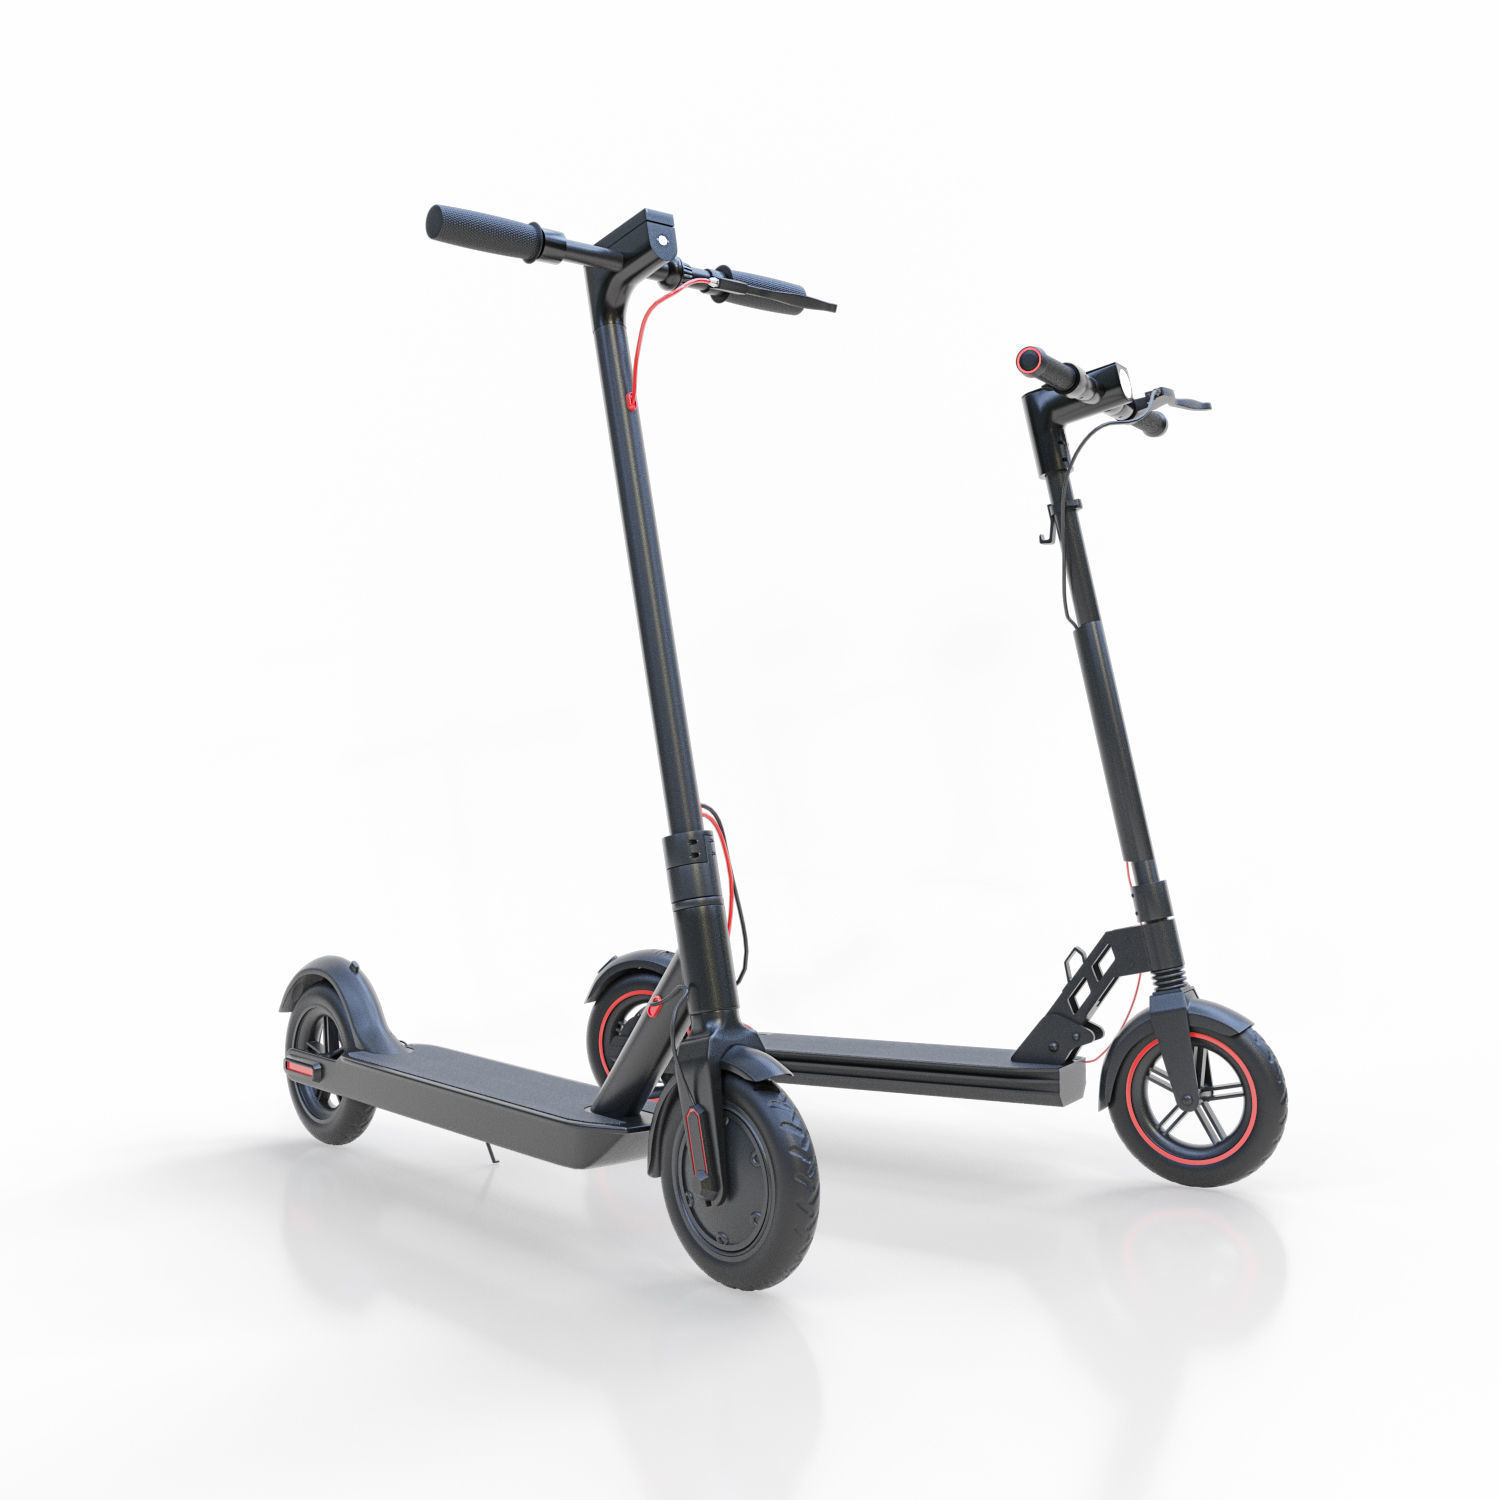 Set of electric scooters Xiaomi Mijia Scooter Unicool Foldable